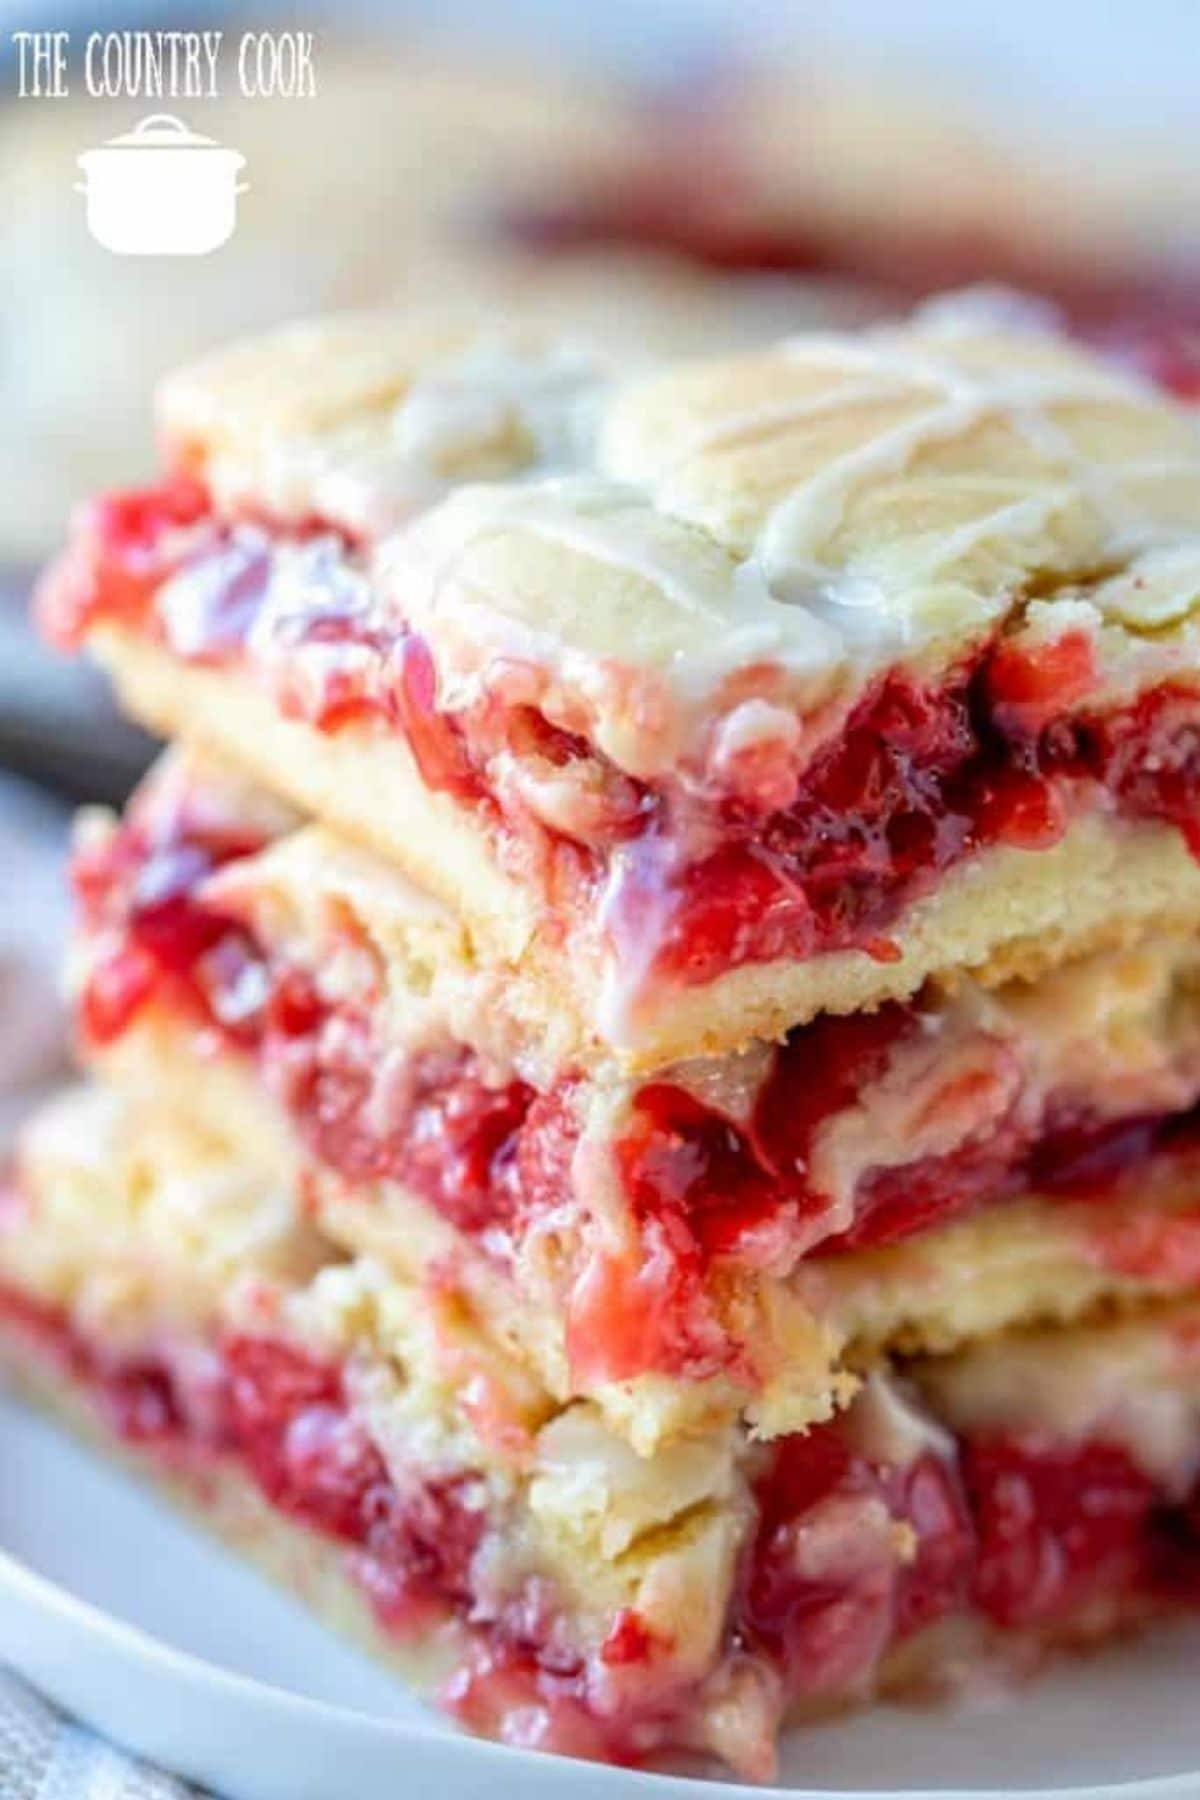 Stack of cherry pie bars on blue plate